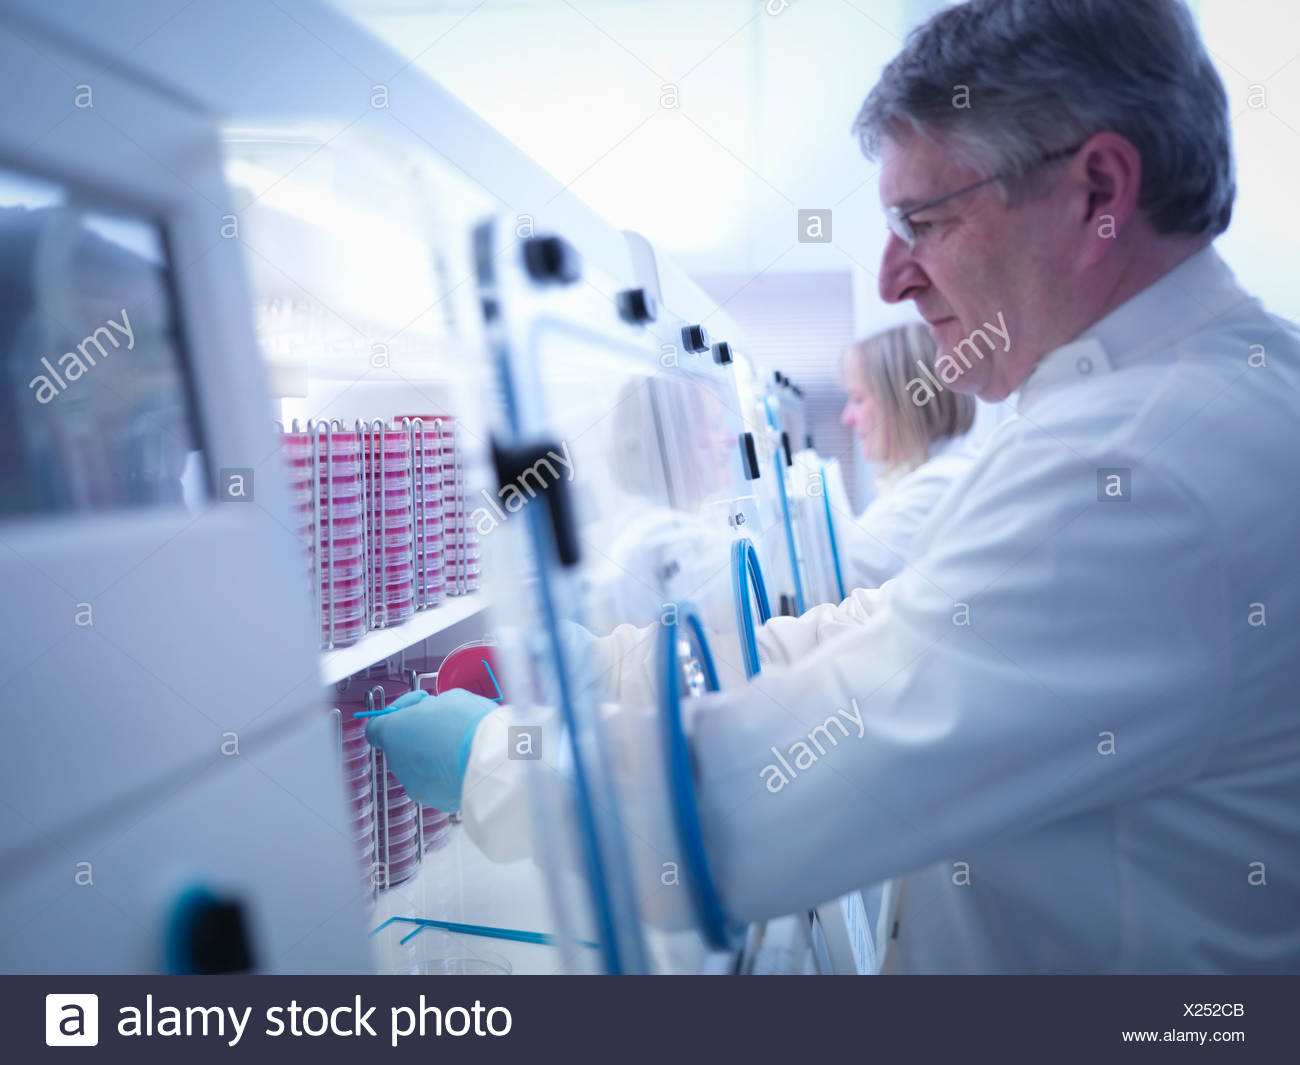 Scientist making bacterial culture in agar inside laboratory workstation - Stock Image